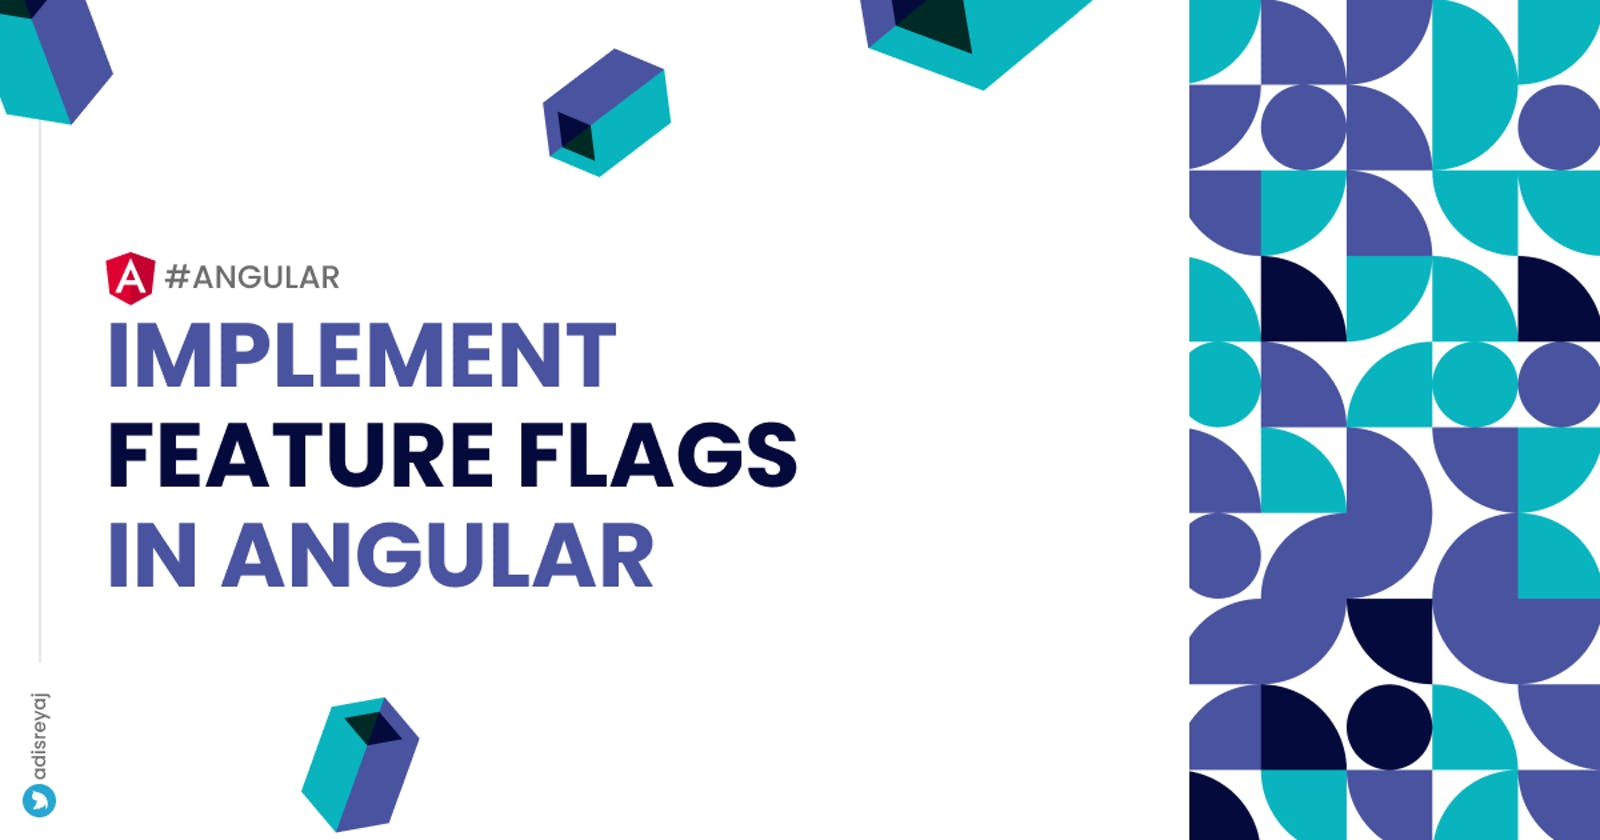 Implementing Feature Flags in Angular is easier than you thought it would be!